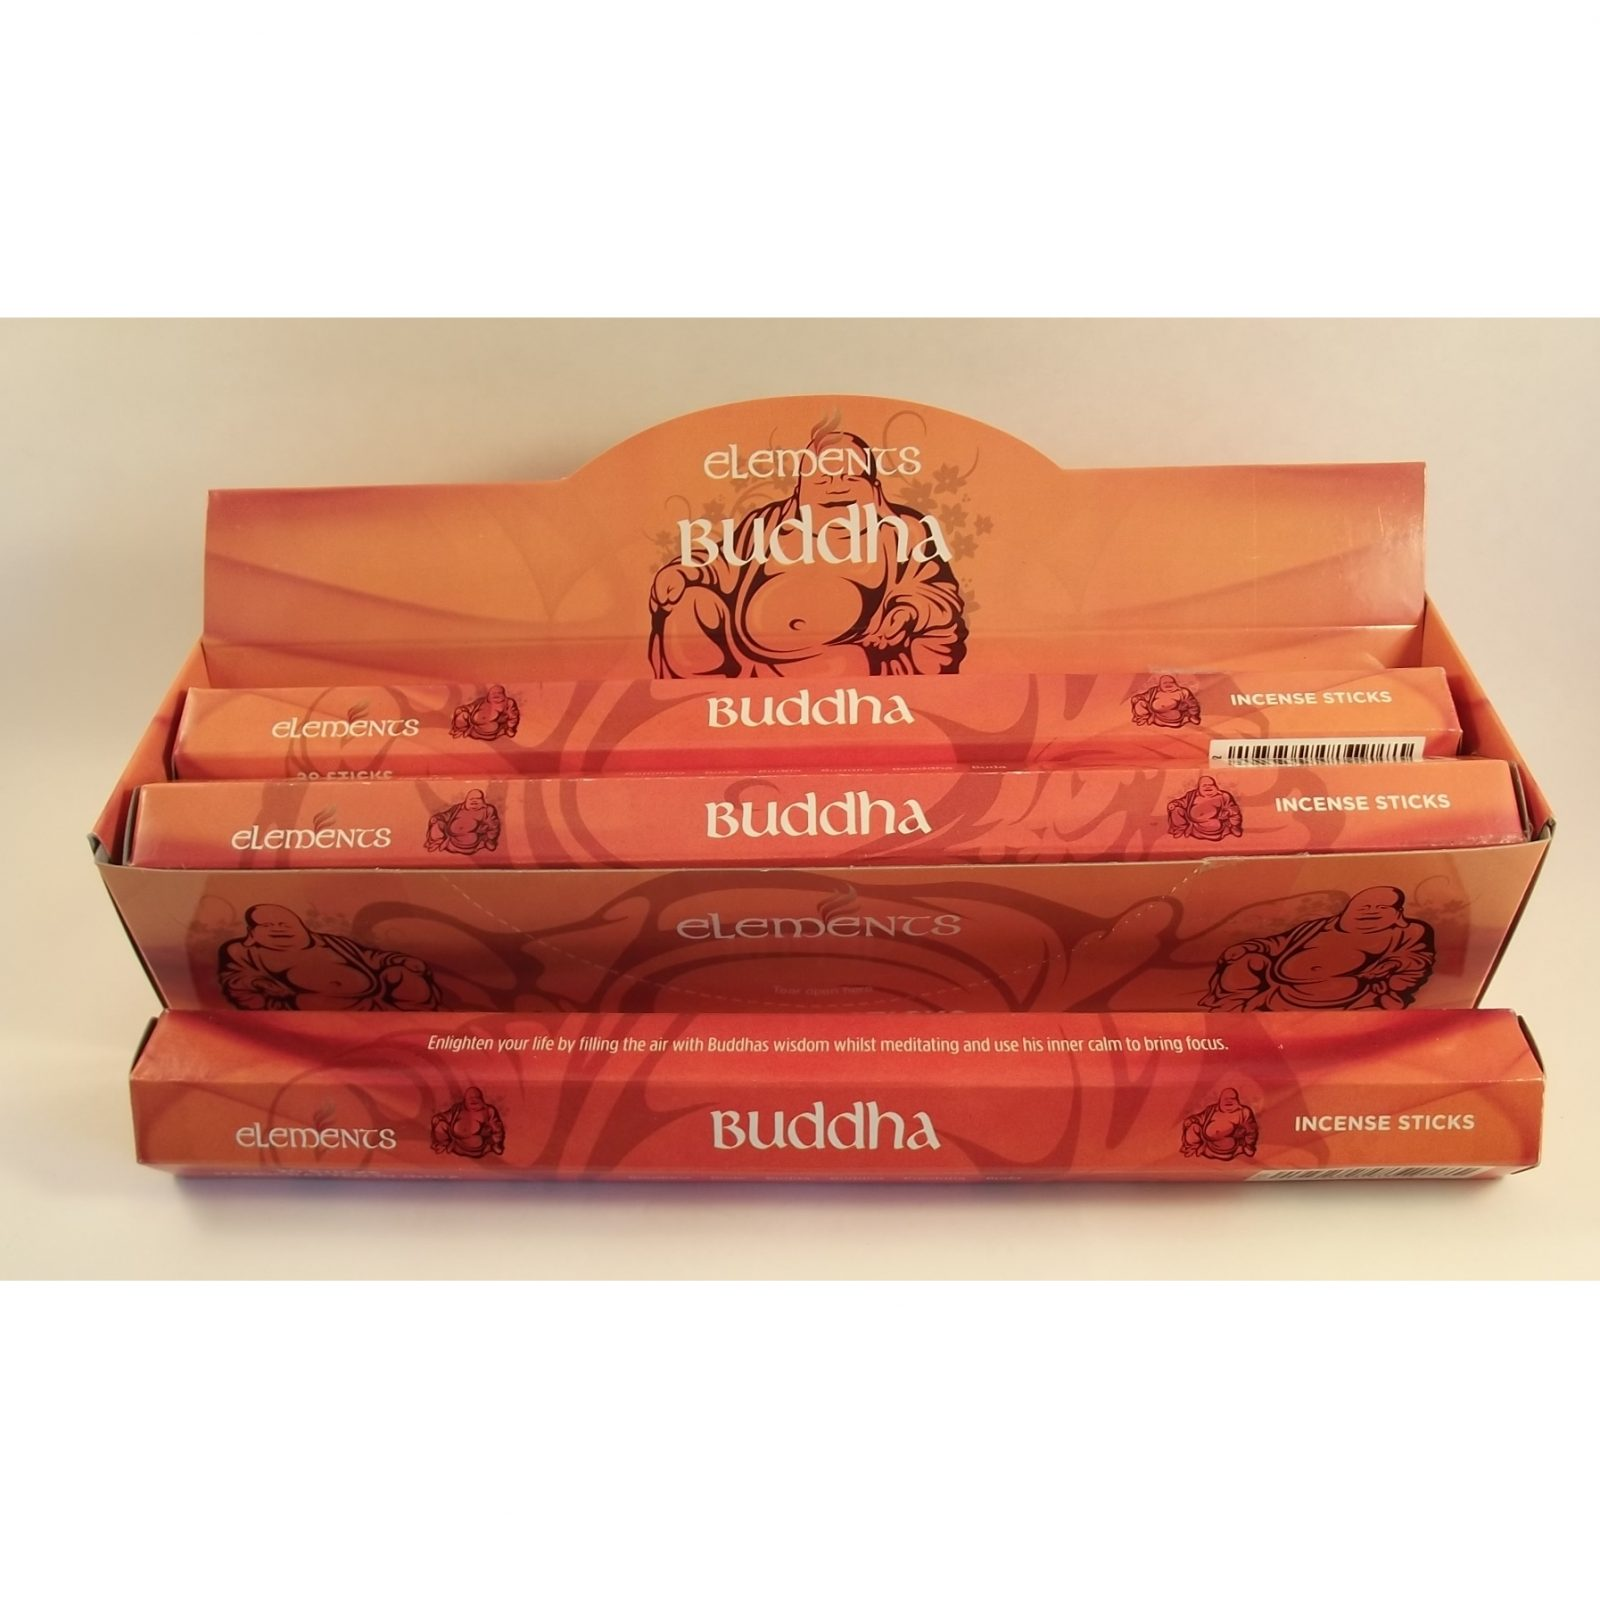 Buddha Incense Sticks Wicca Wax And Wands